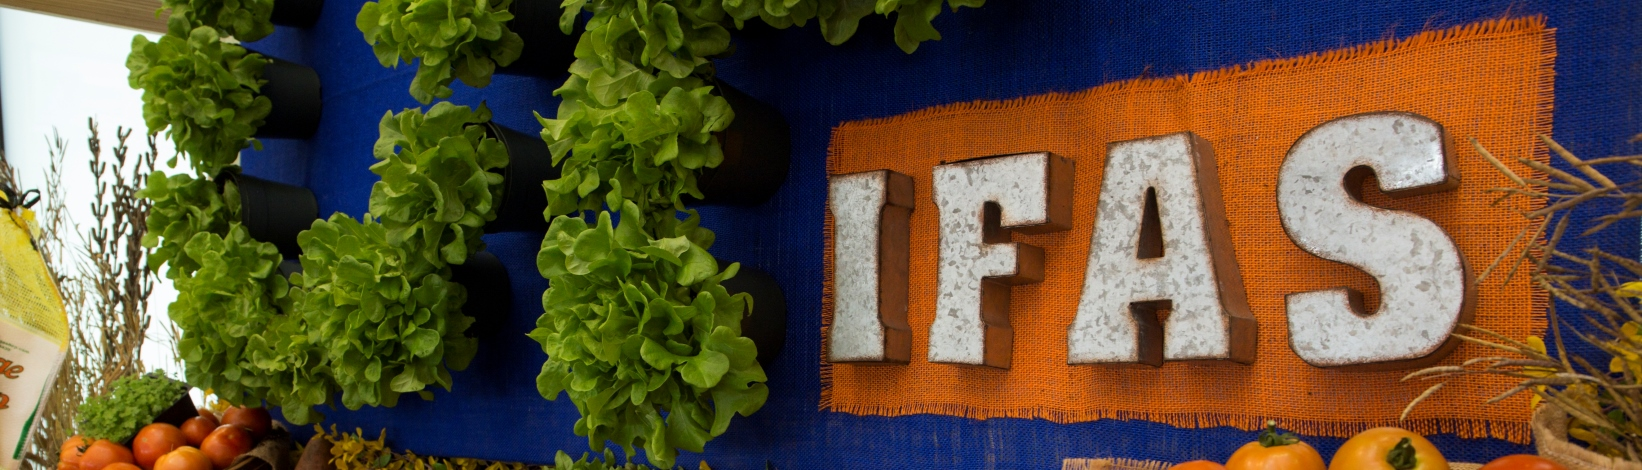 UF/IFAS Banner over baskets of veggies